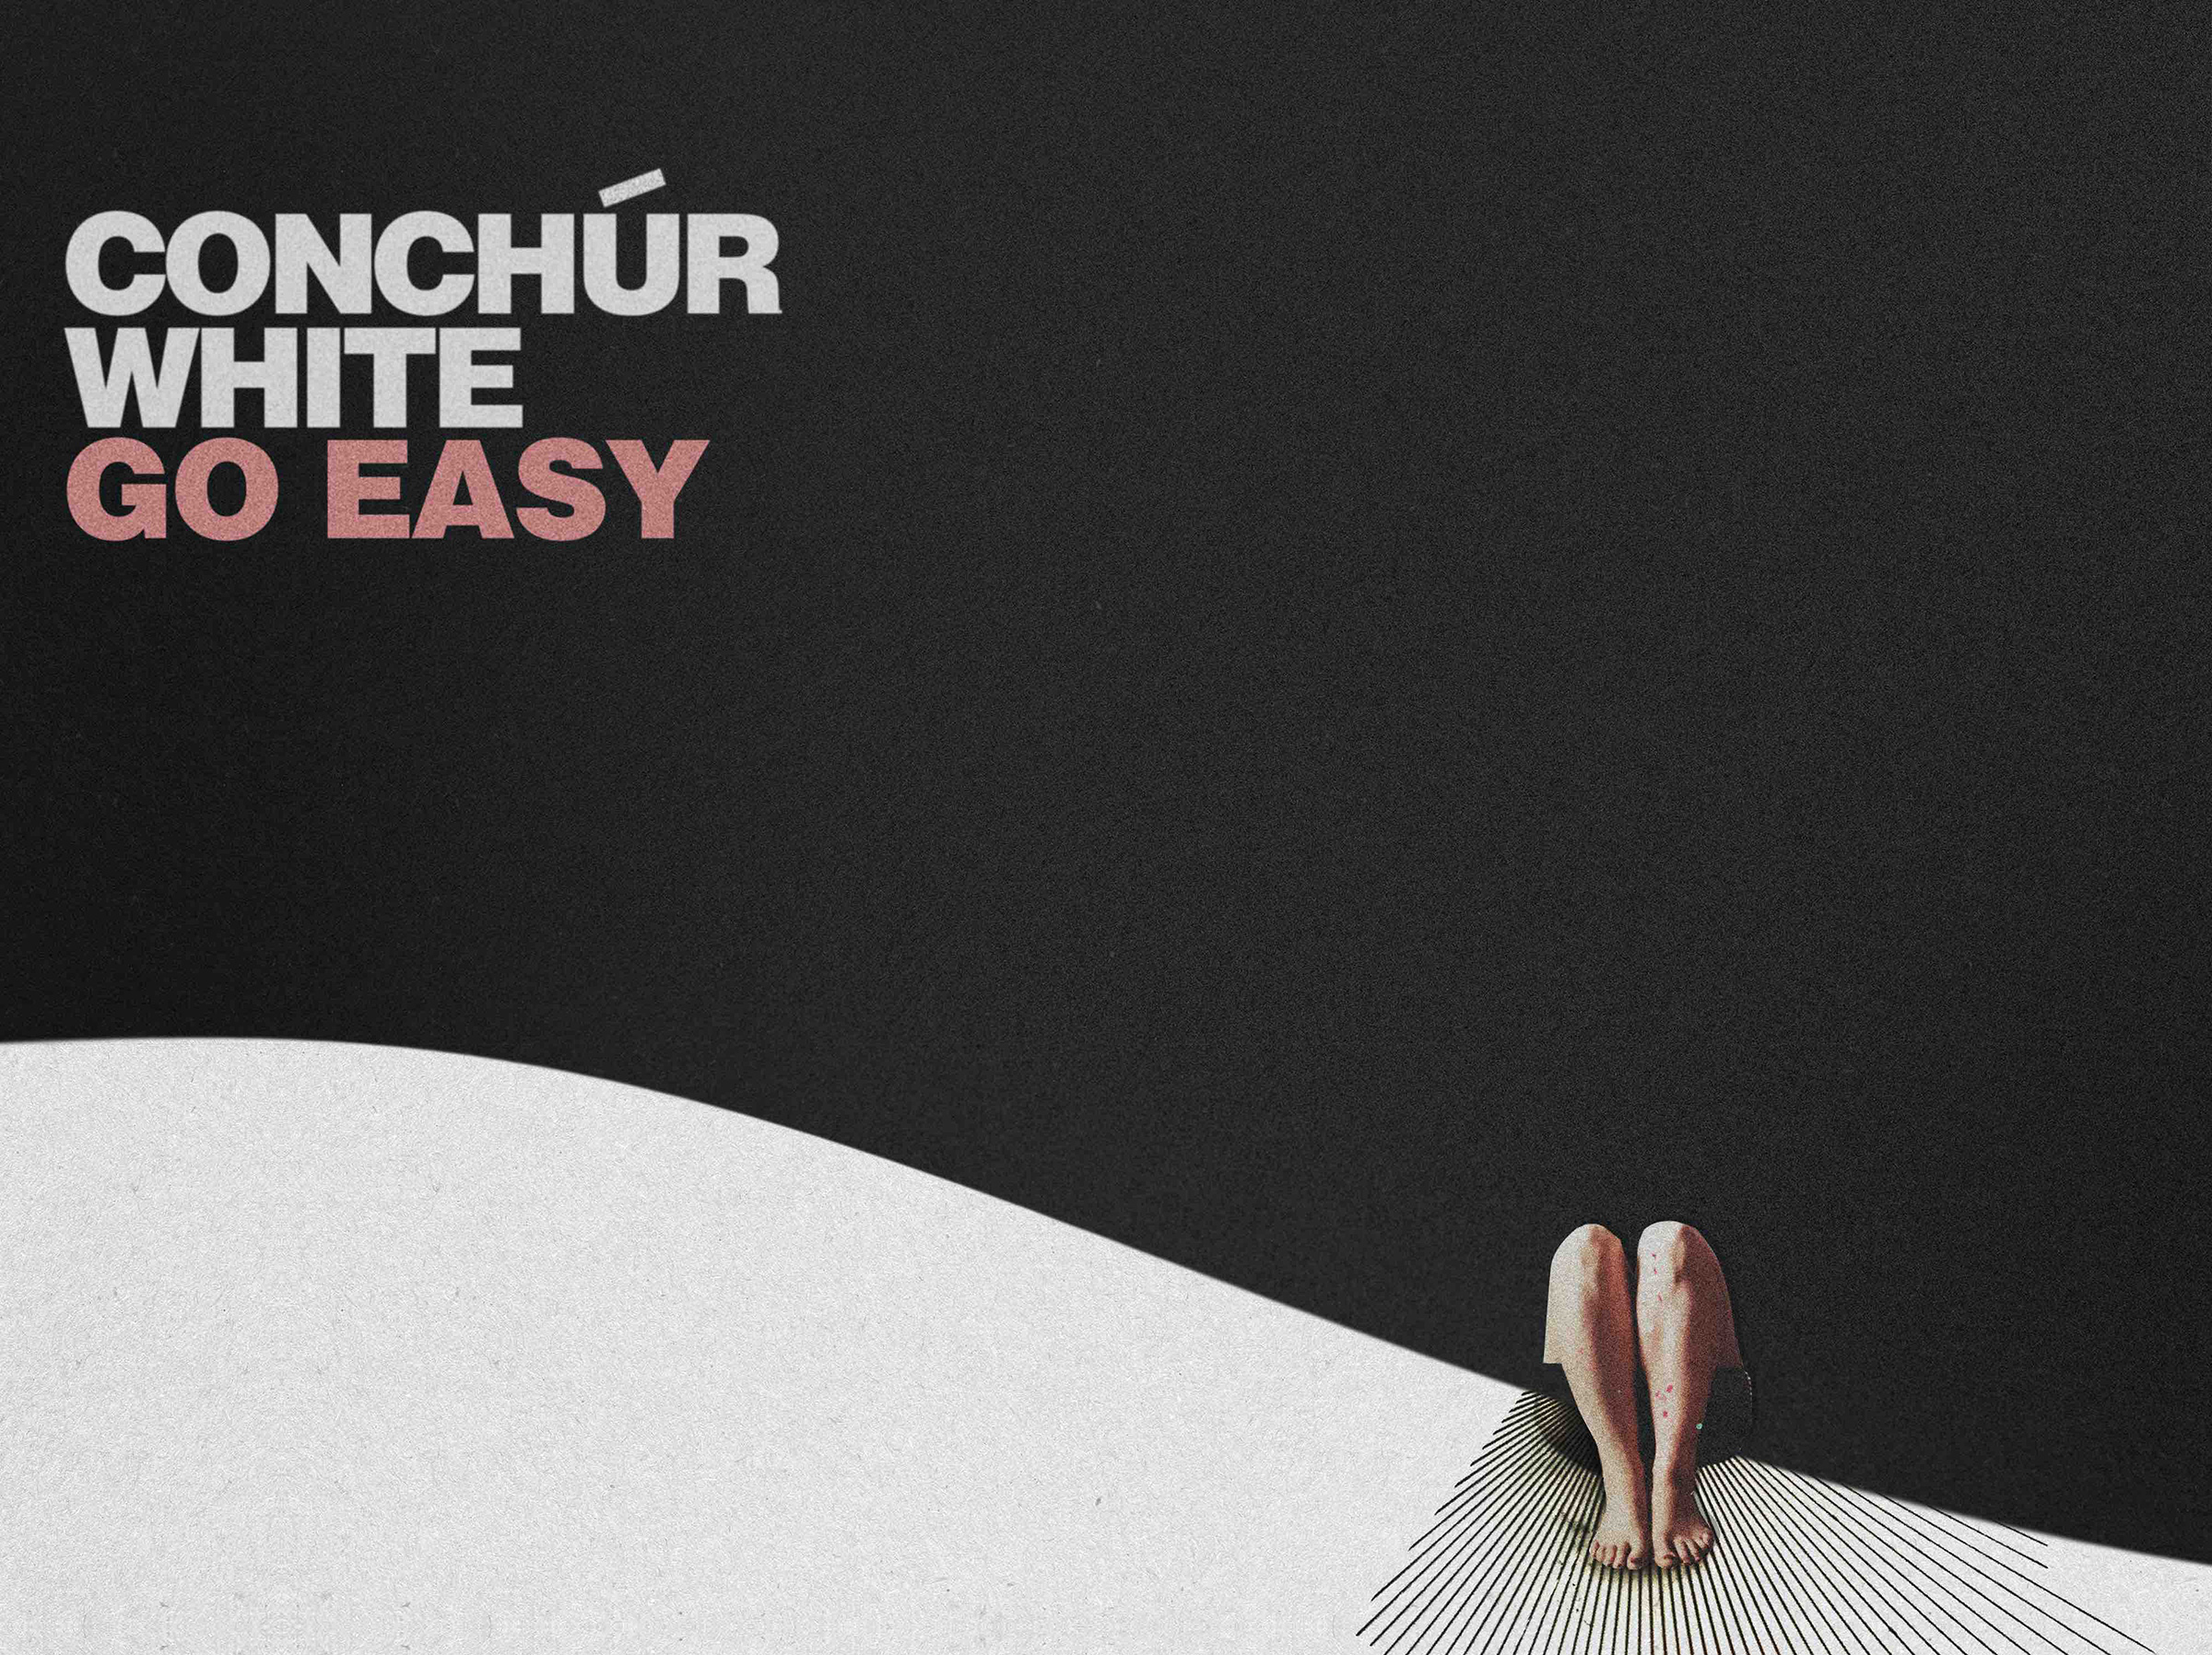 Conchúr White announces new EP 'Dreamers' & shares new single 'Go Easy'